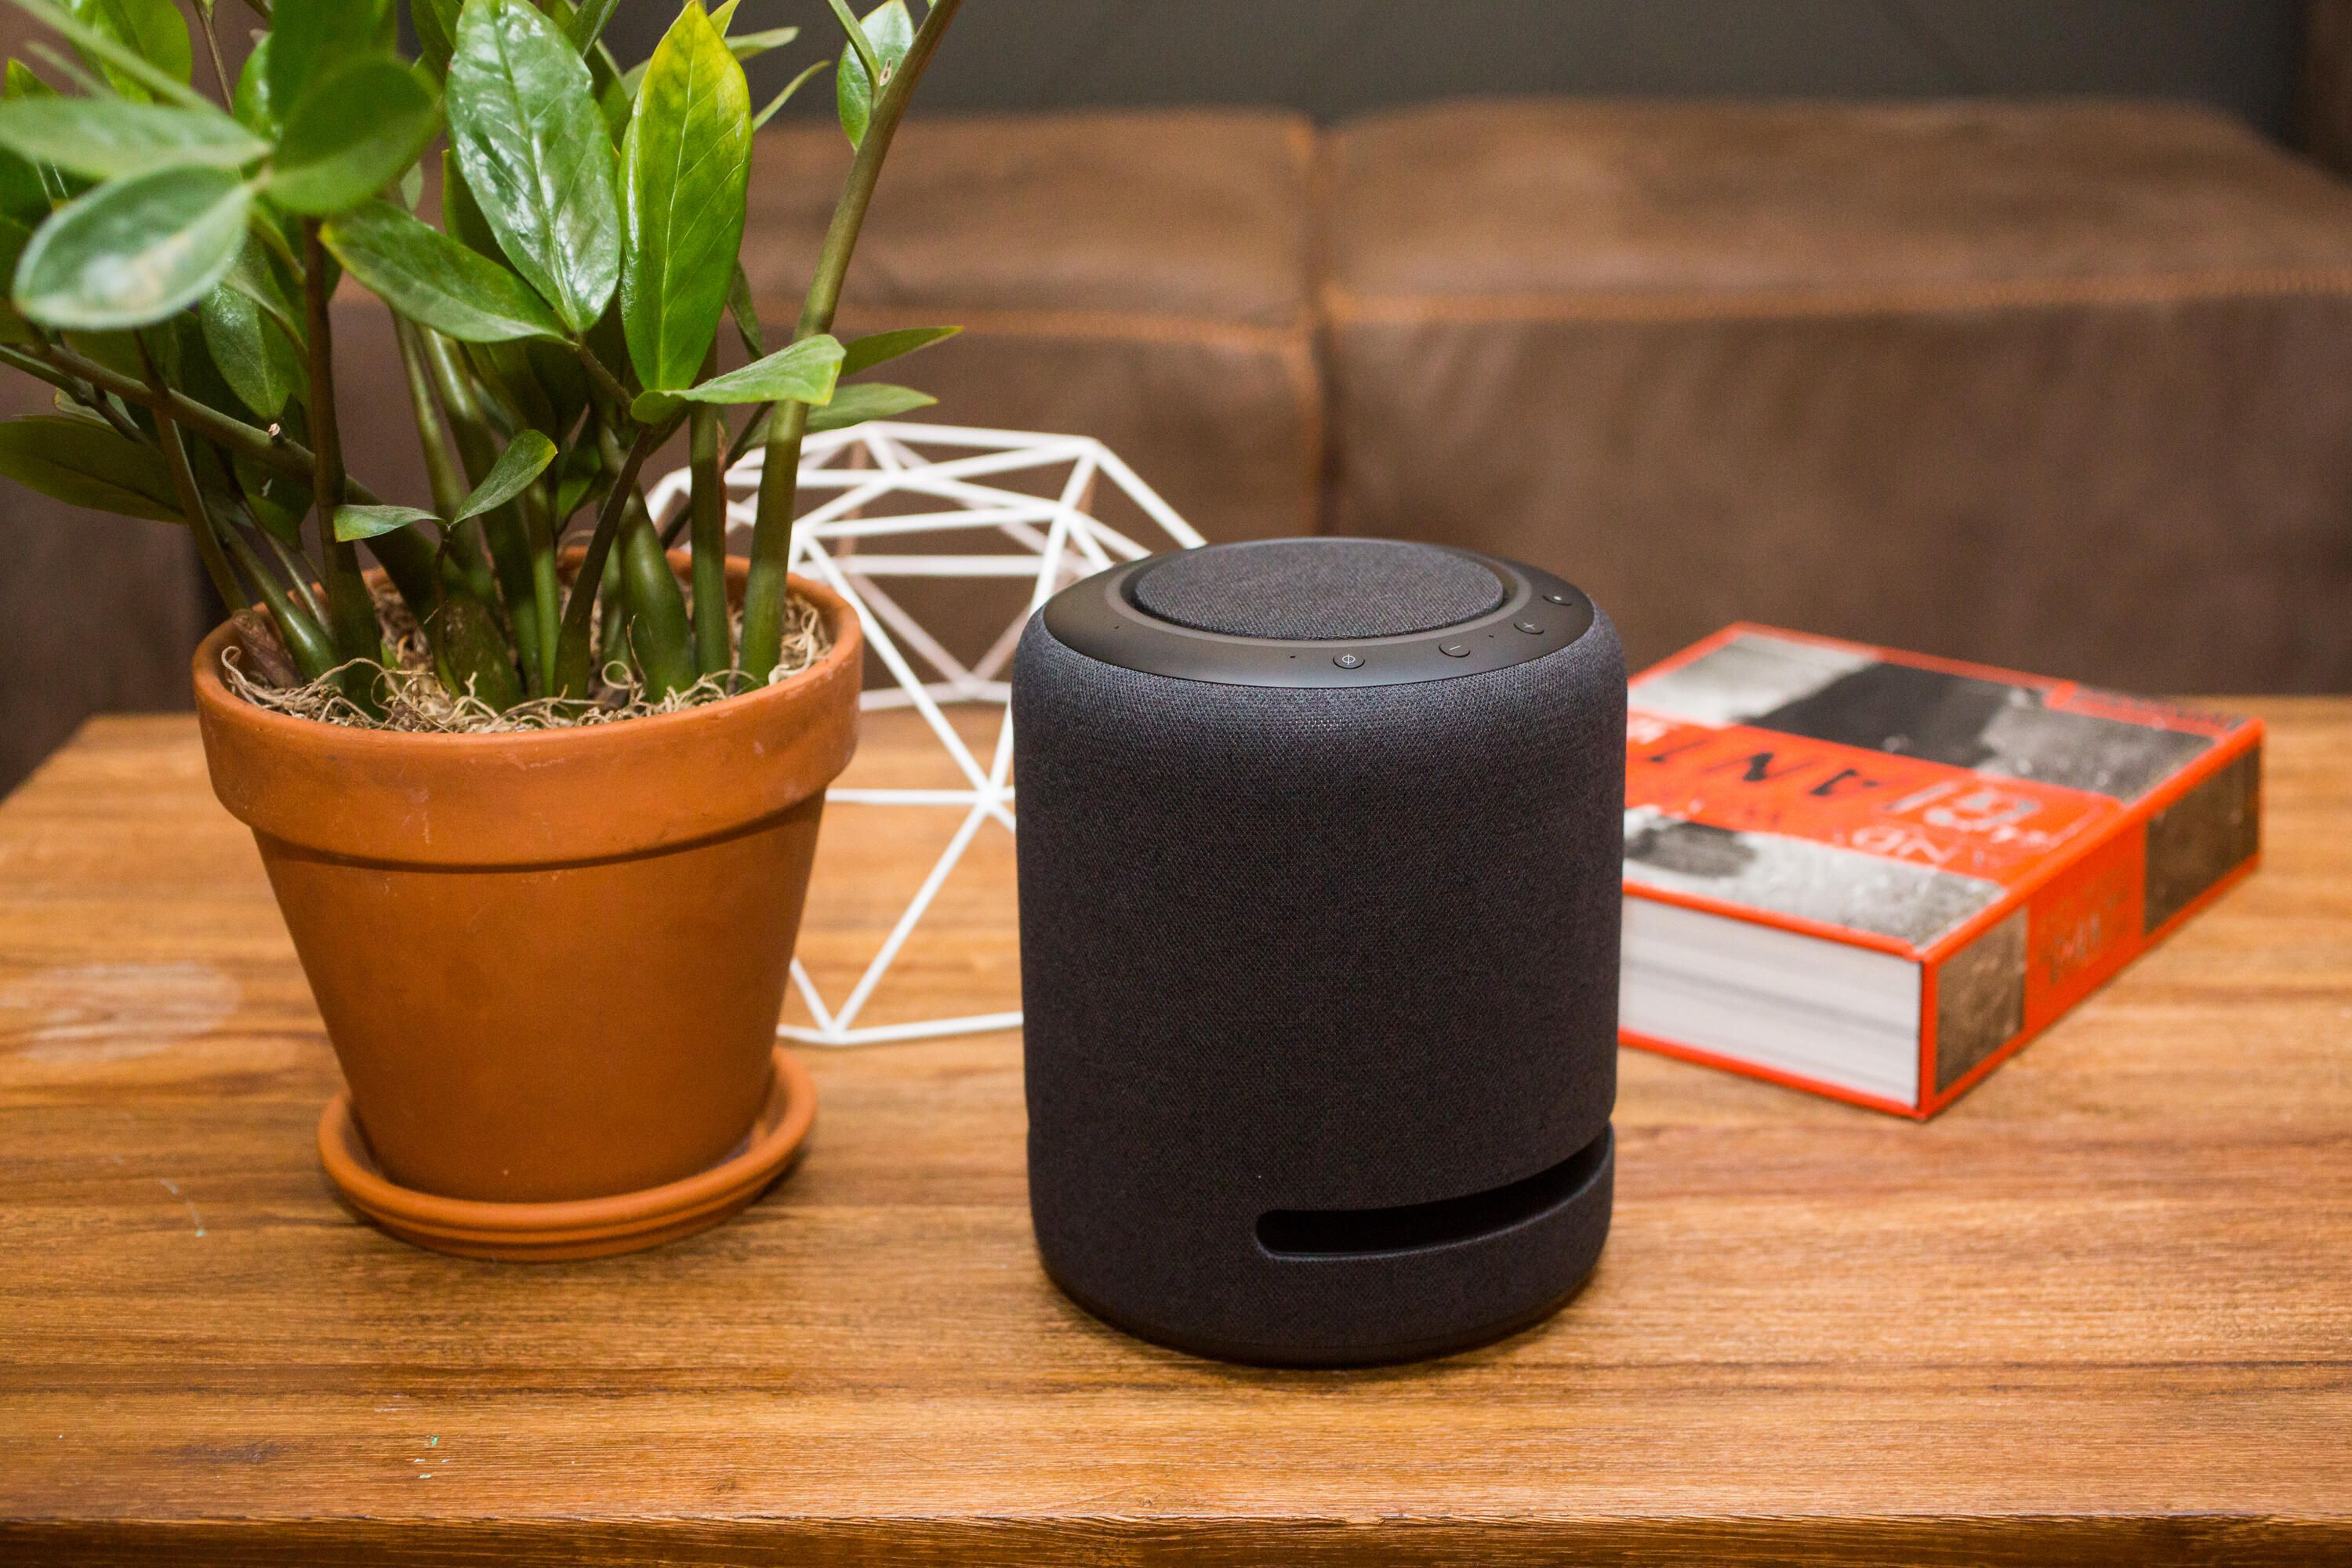 19-amazon-echo-studio